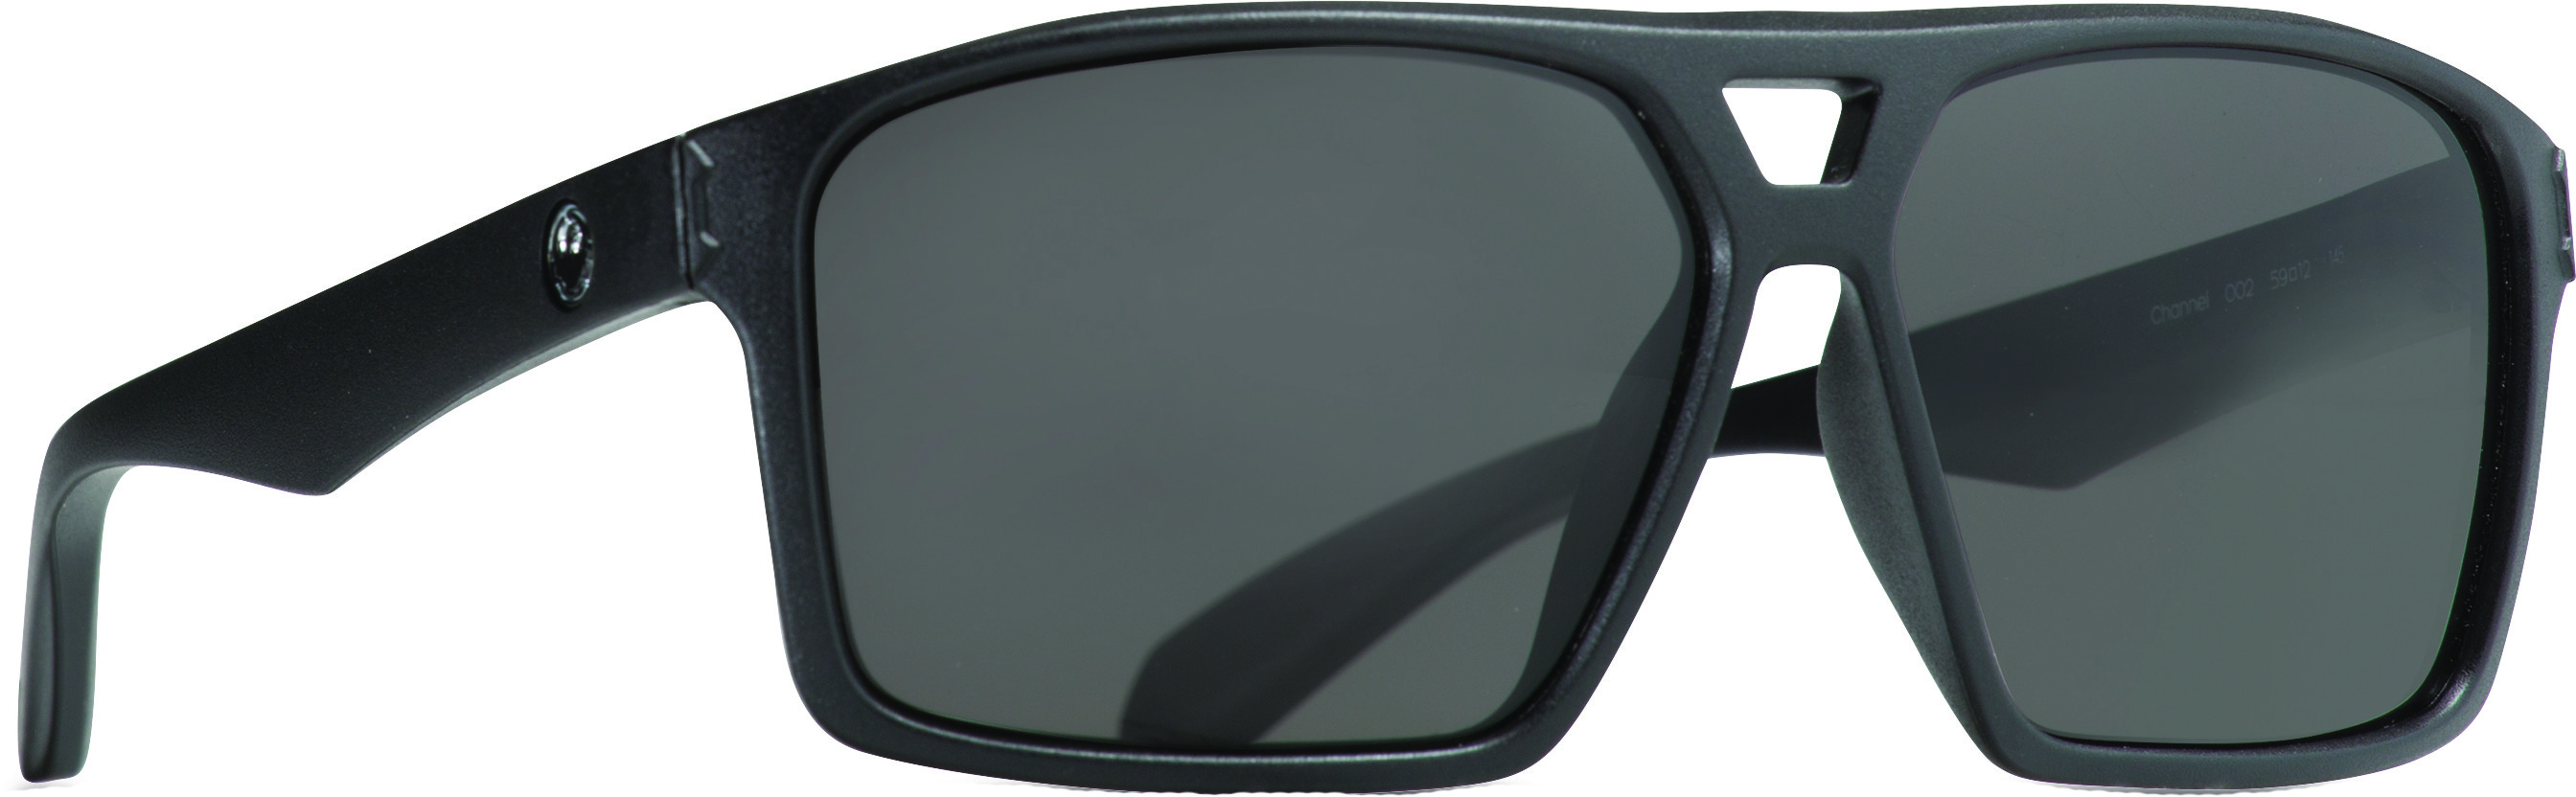 Channel Sunglasses Matte Black W/Smoke Lens